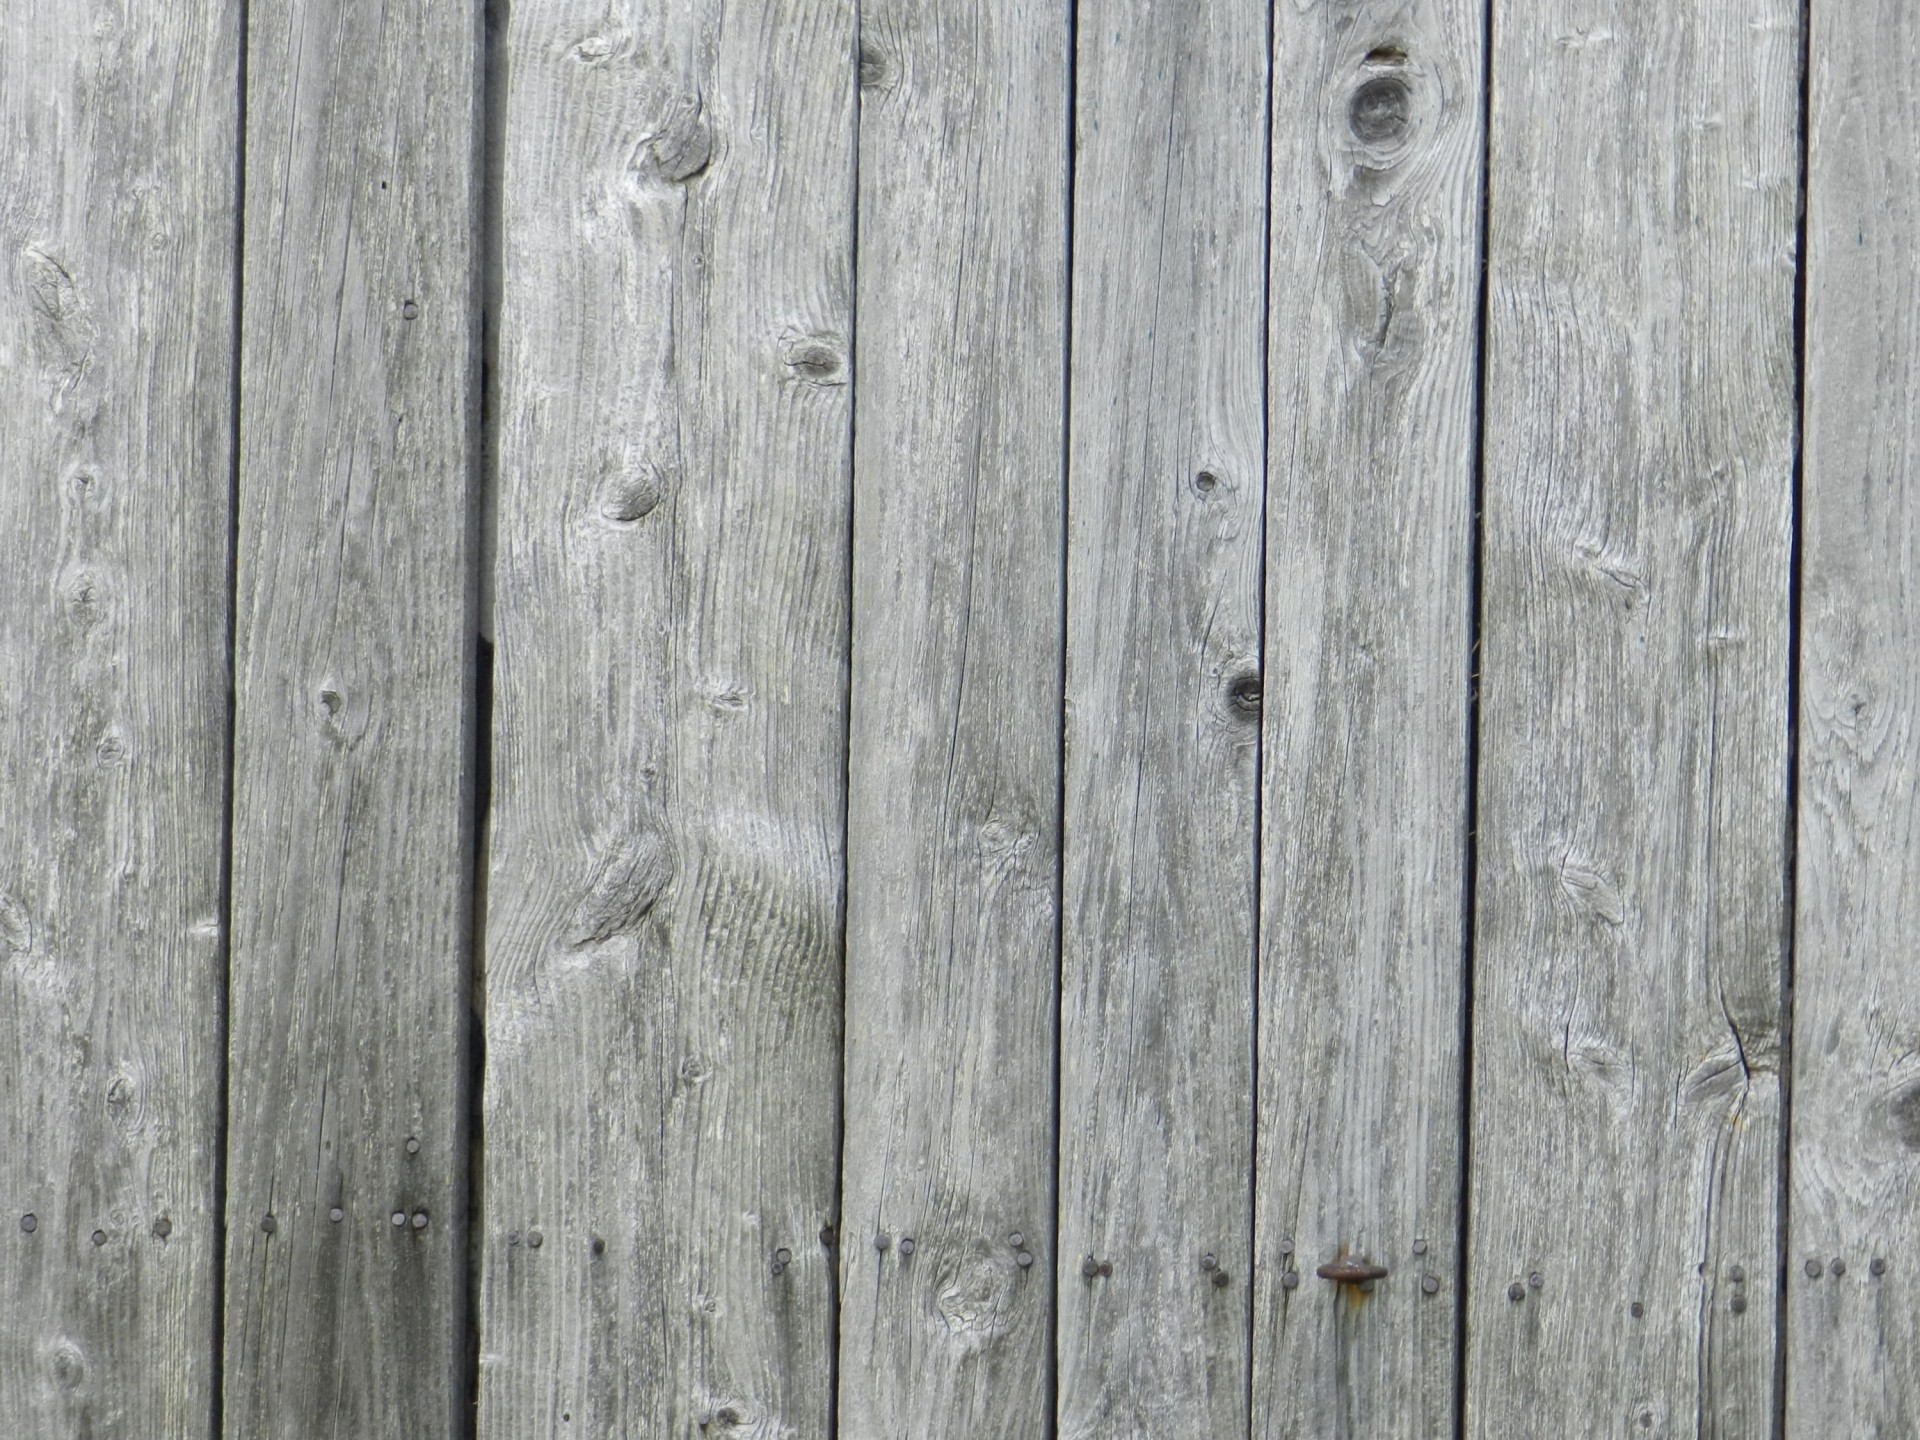 Barn Wood Background Barn Wood 6 1920x1440